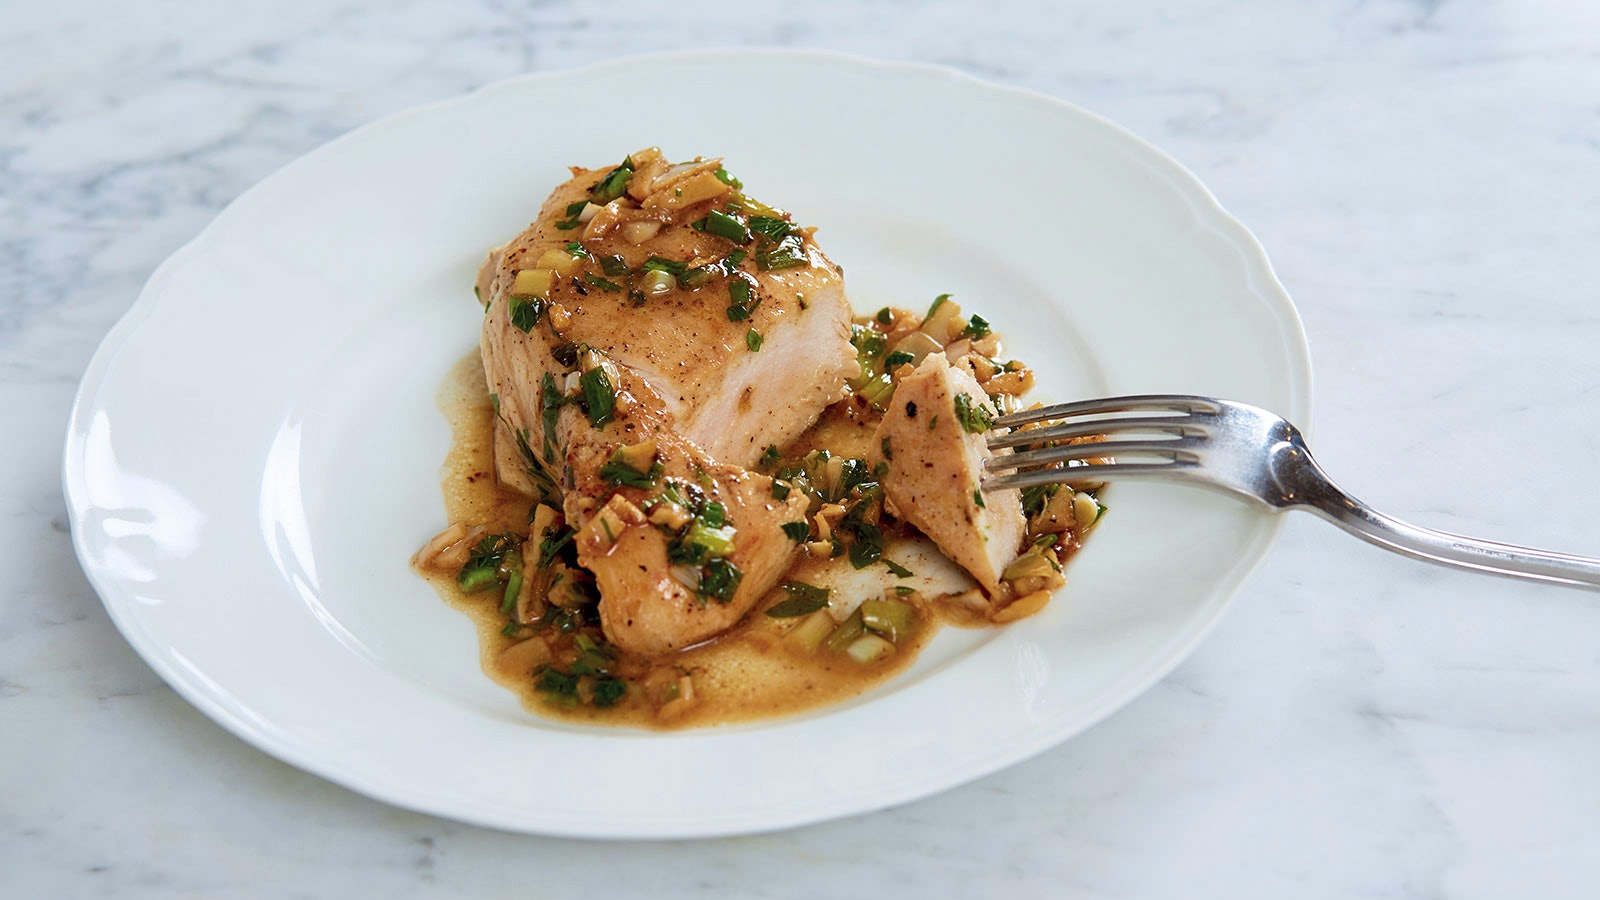 A white plate with a boneless chicken breast topped with an oil-based sauce of garlic, parsley and scallions.